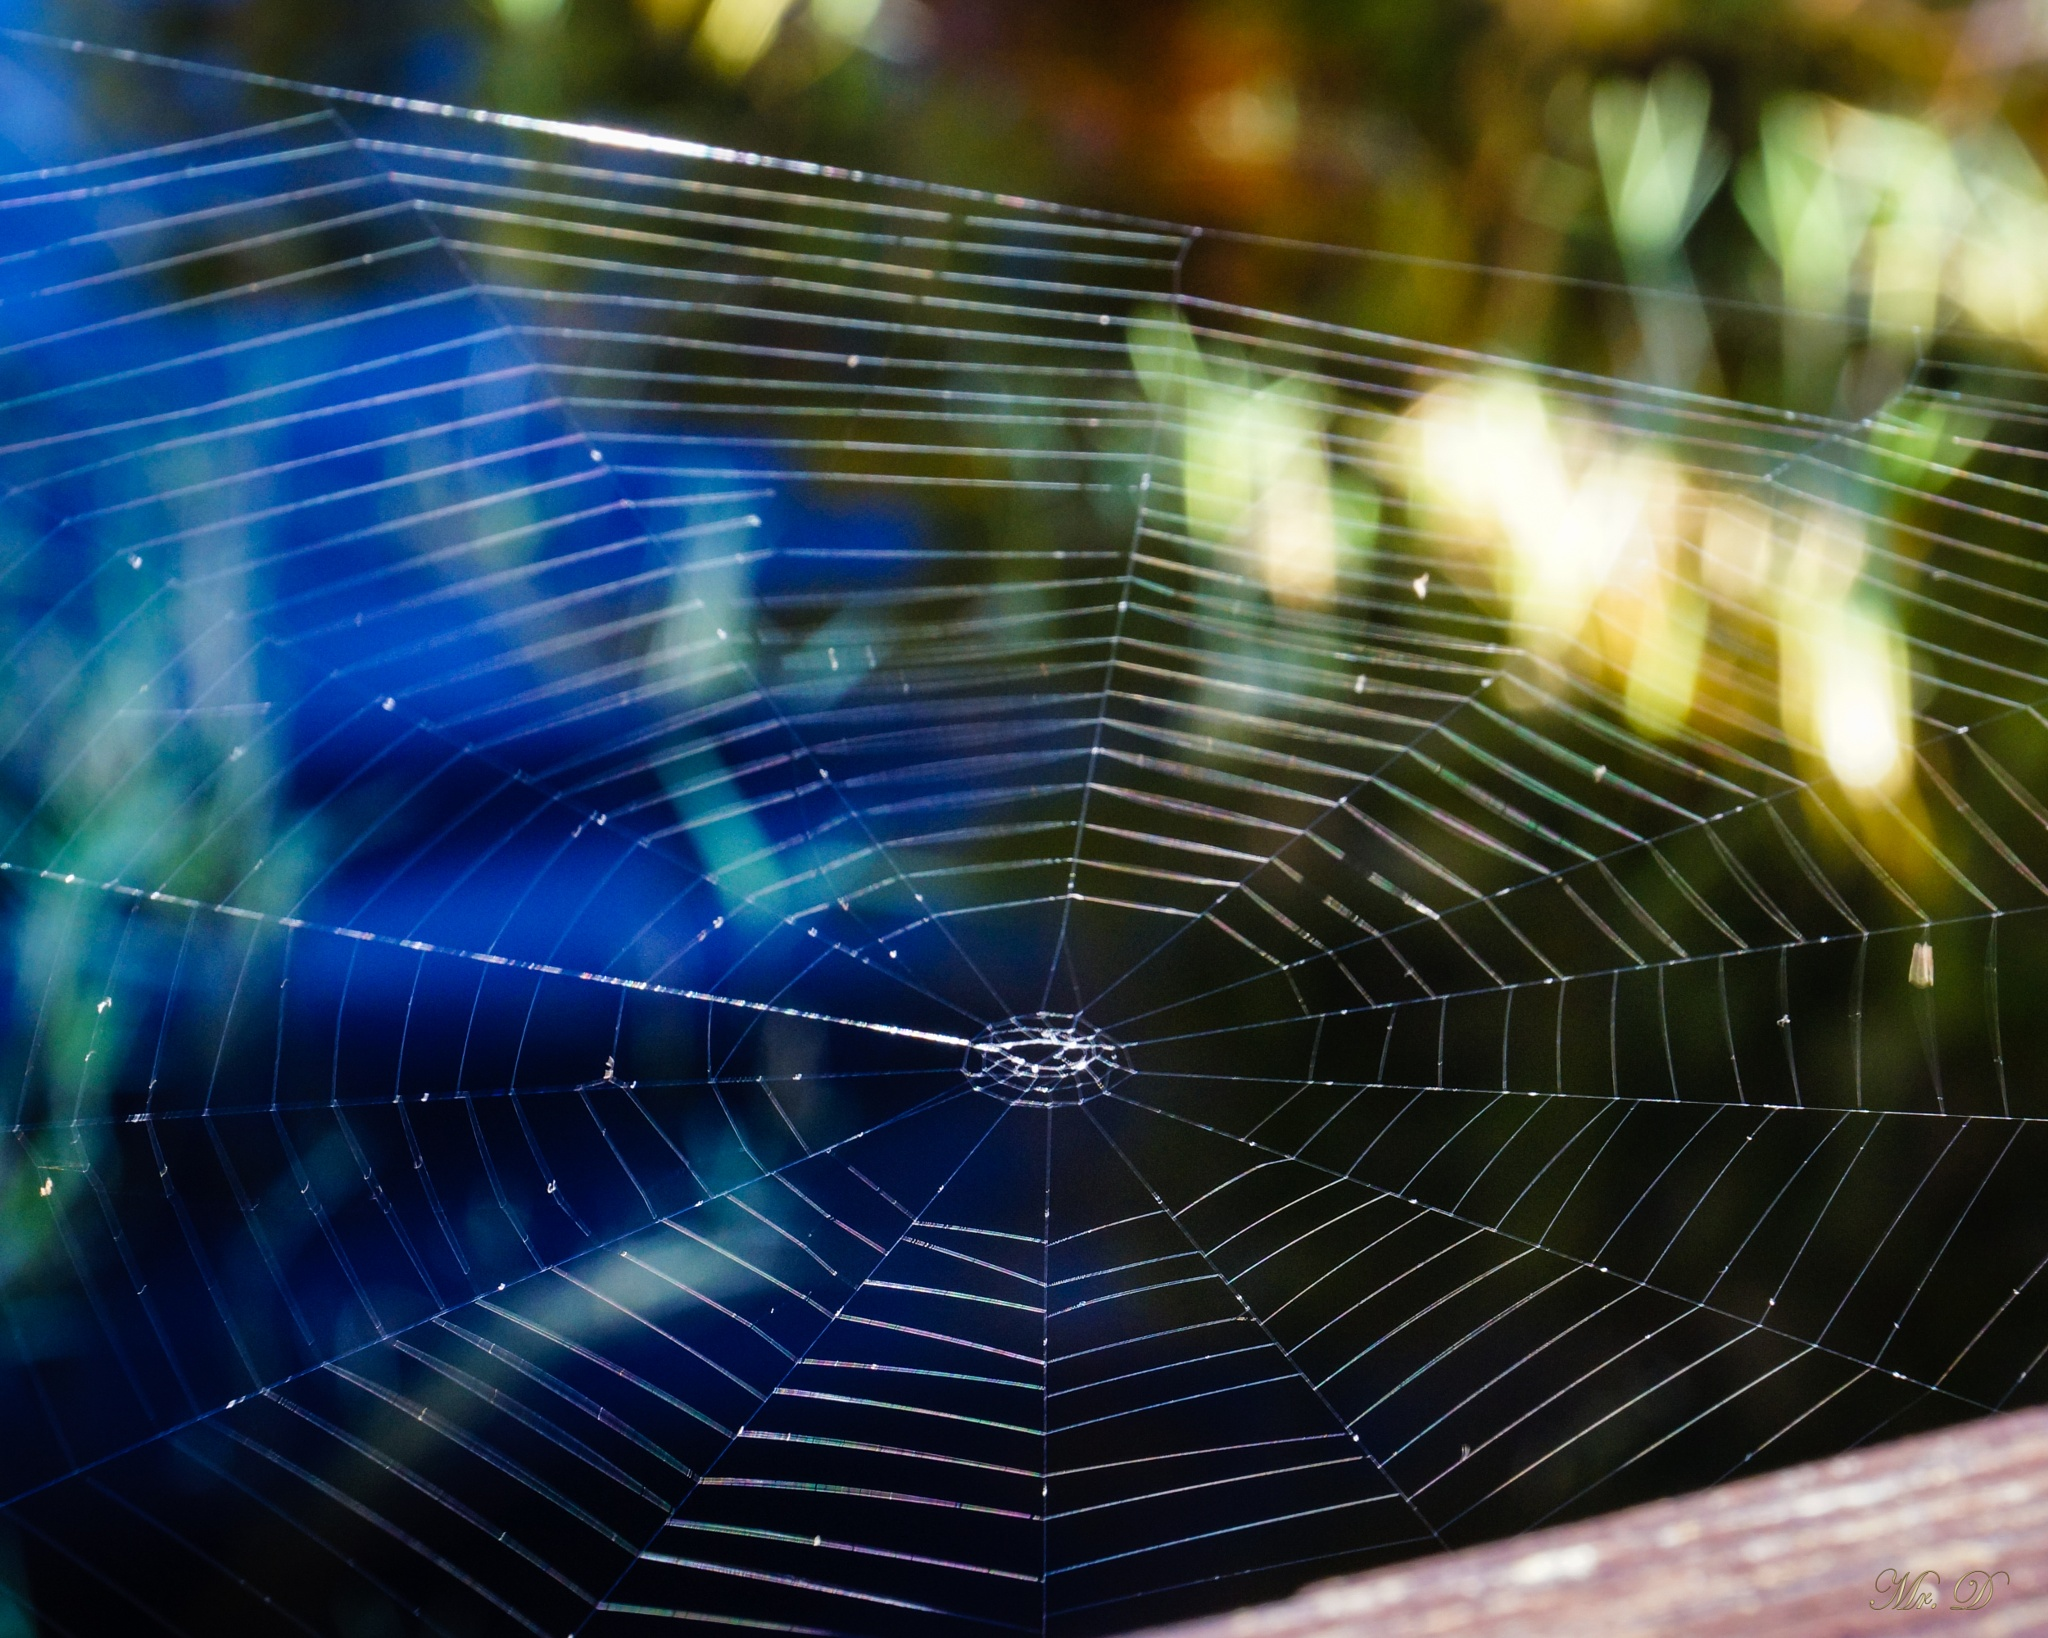 The web we weave by Dale Mr D  Simmons